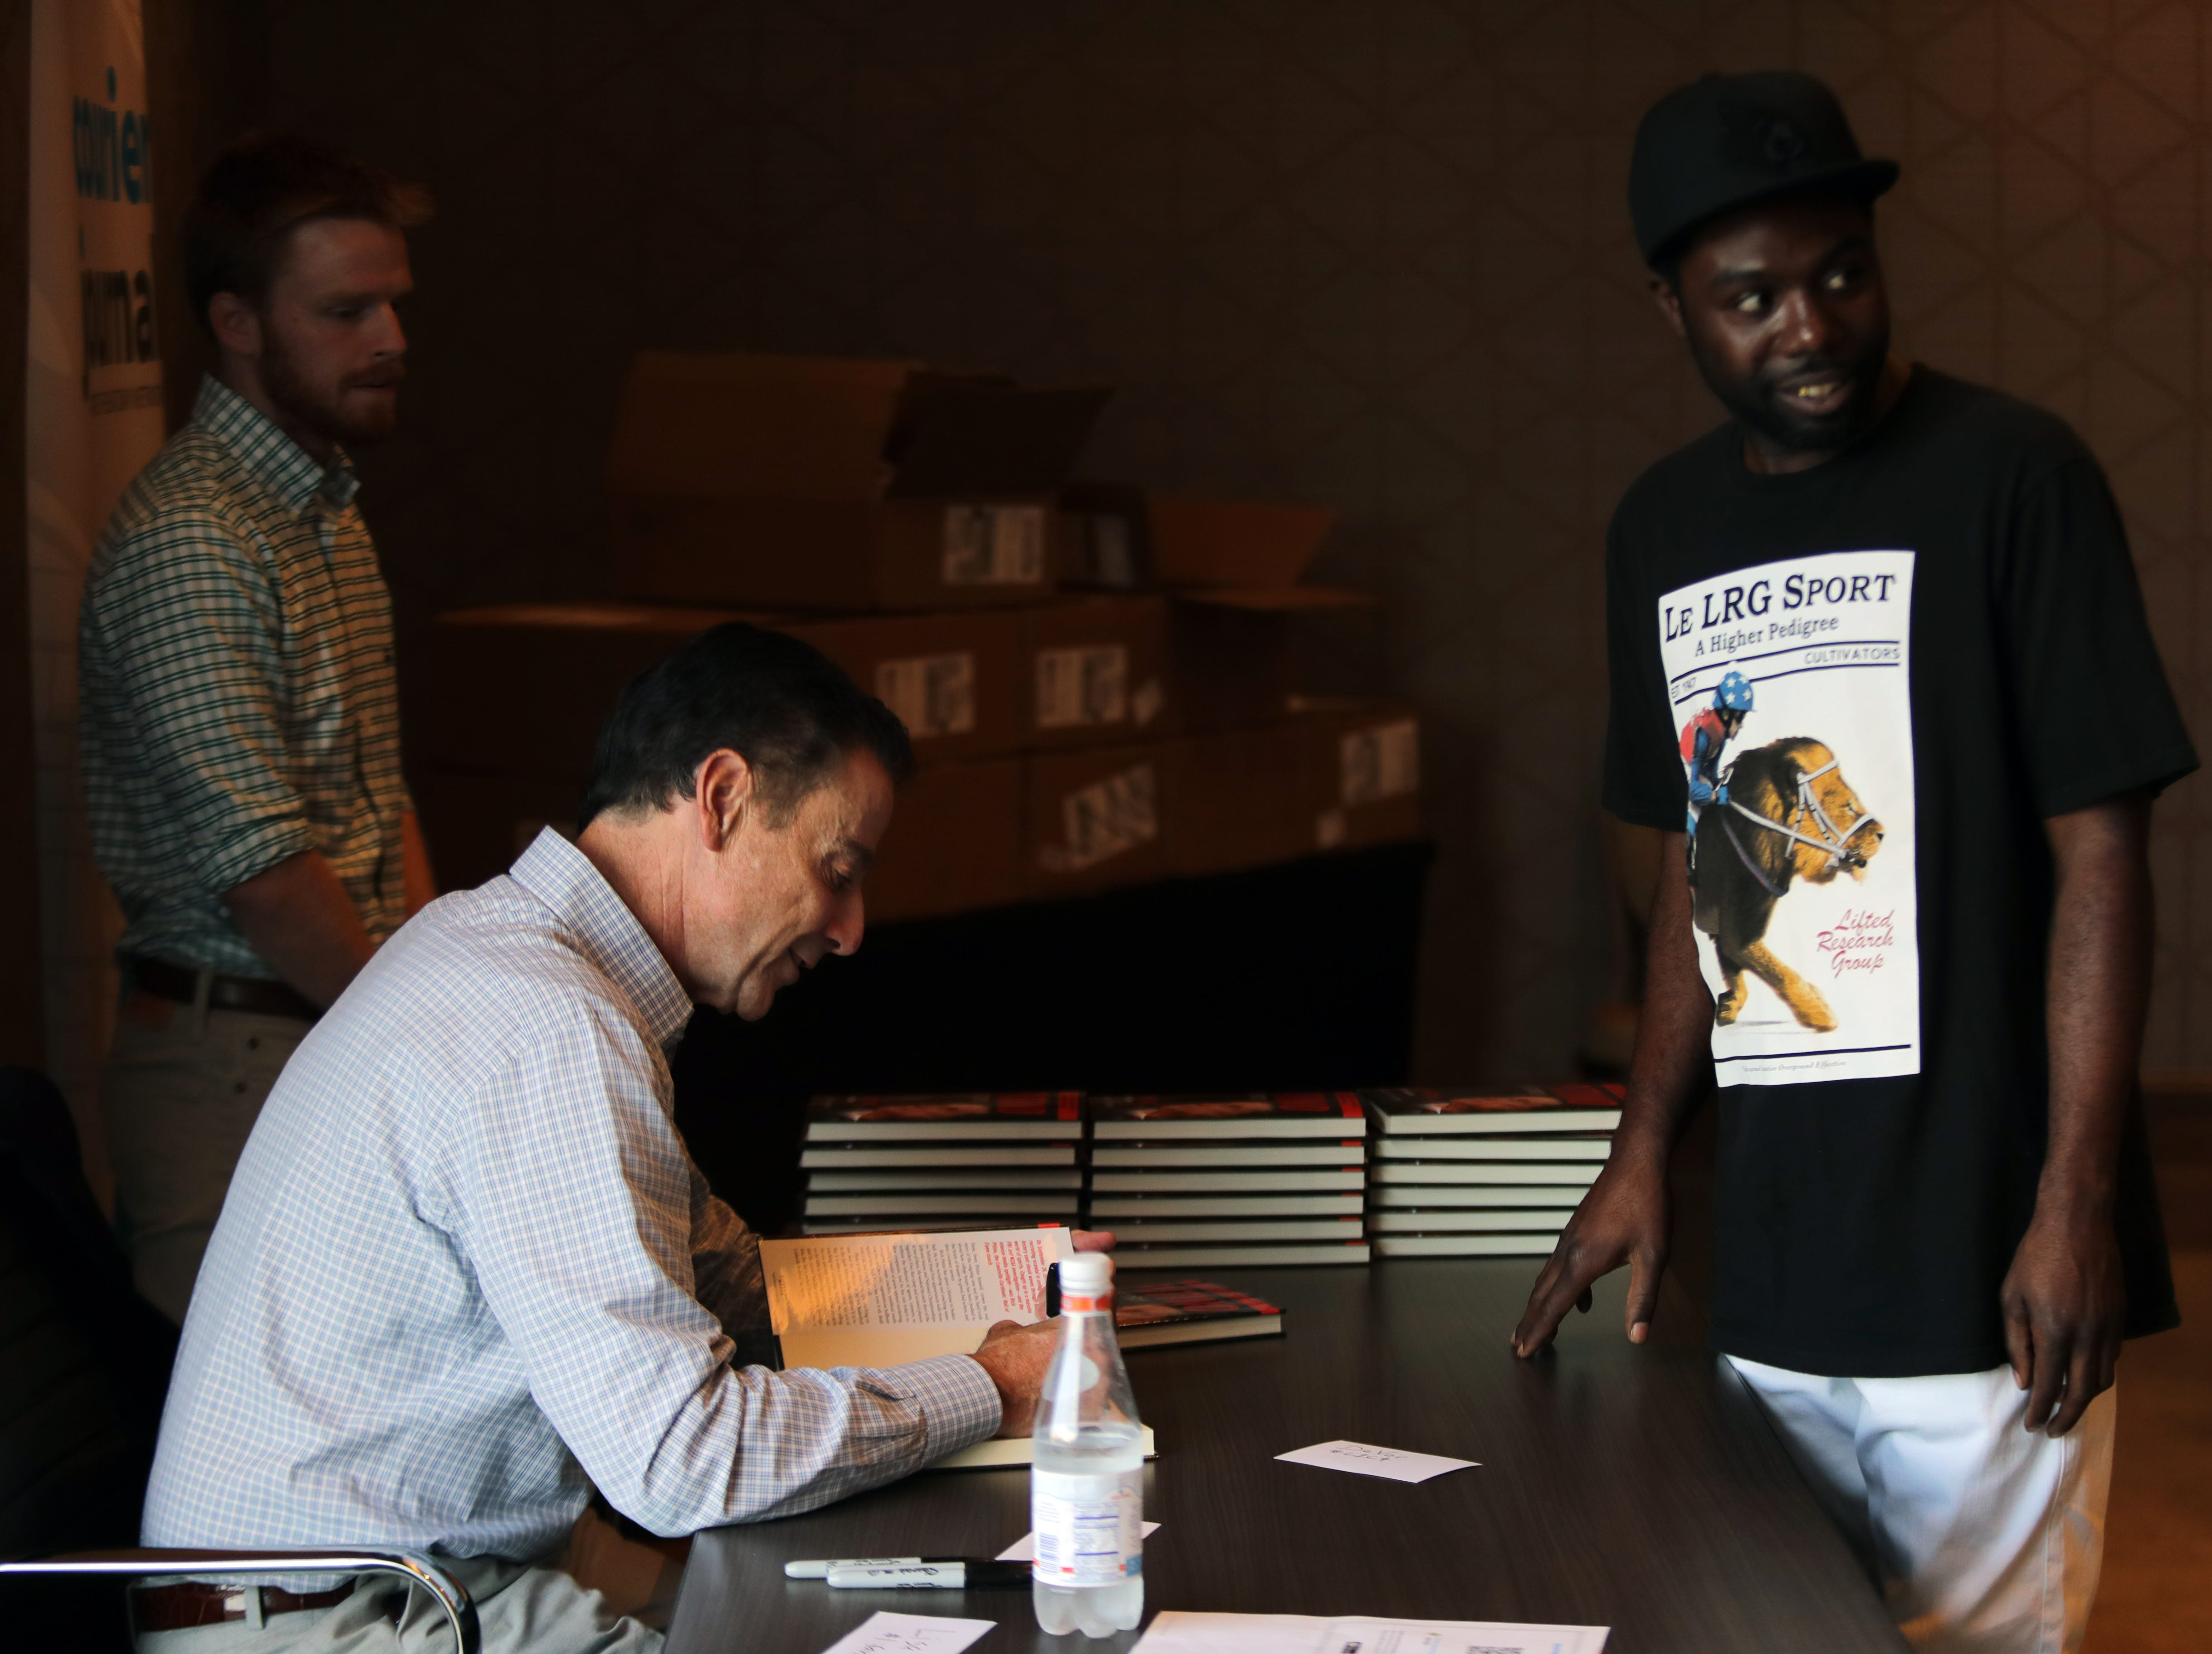 Rick Pitino talks with fans at his book signing at the Omni Hotel on Friday afternoon in Louisville, Kentucky.Sept. 14, 2018